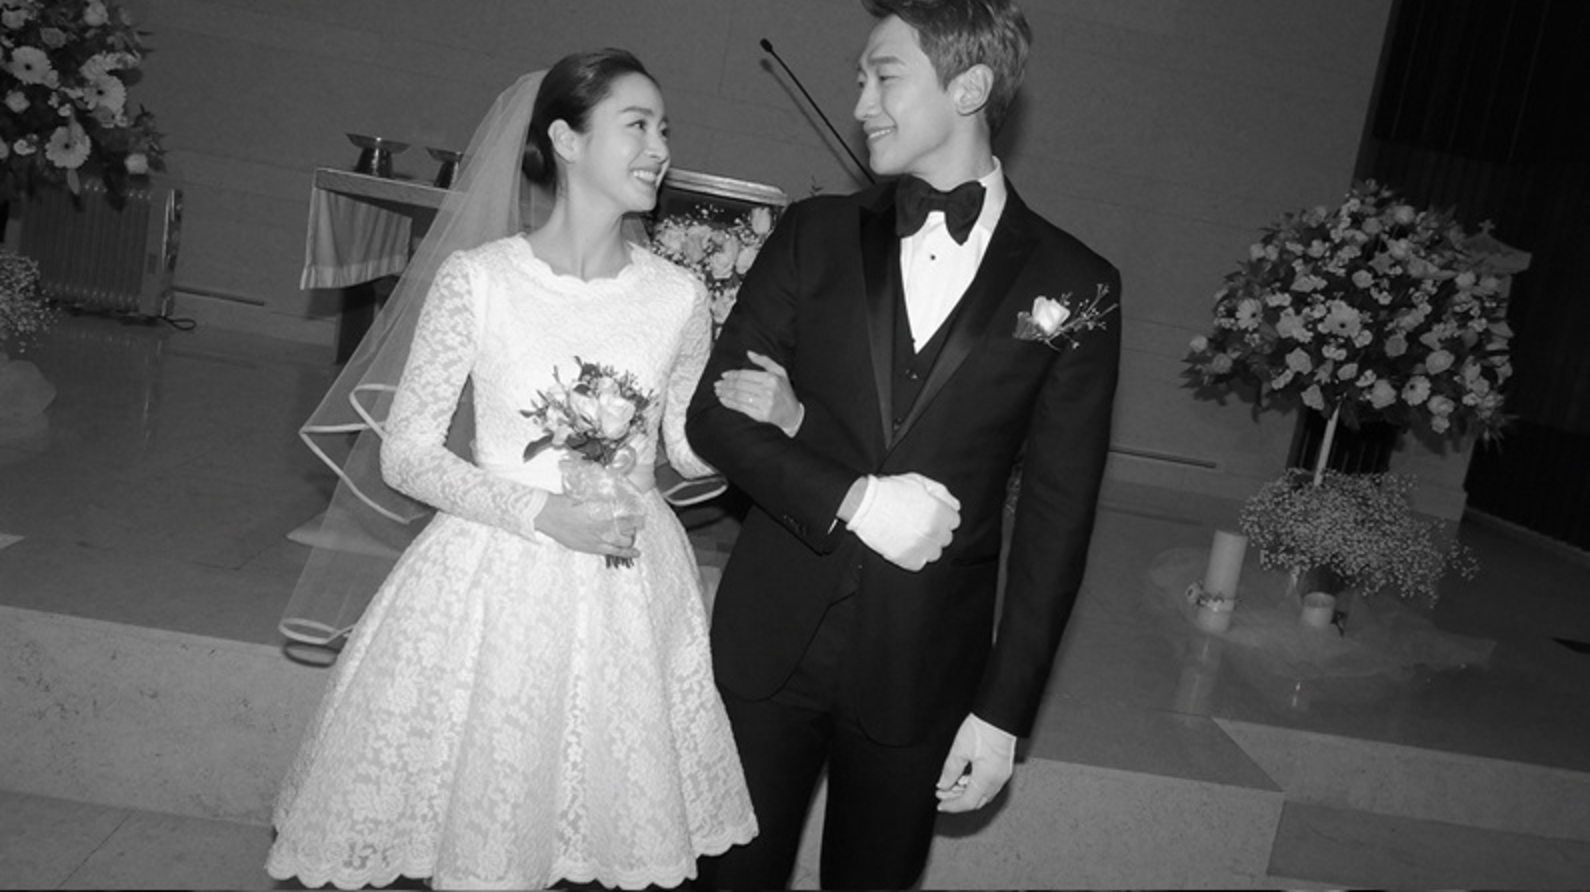 Rain Talks About Deciding With Kim Tae Hee On A Small Wedding